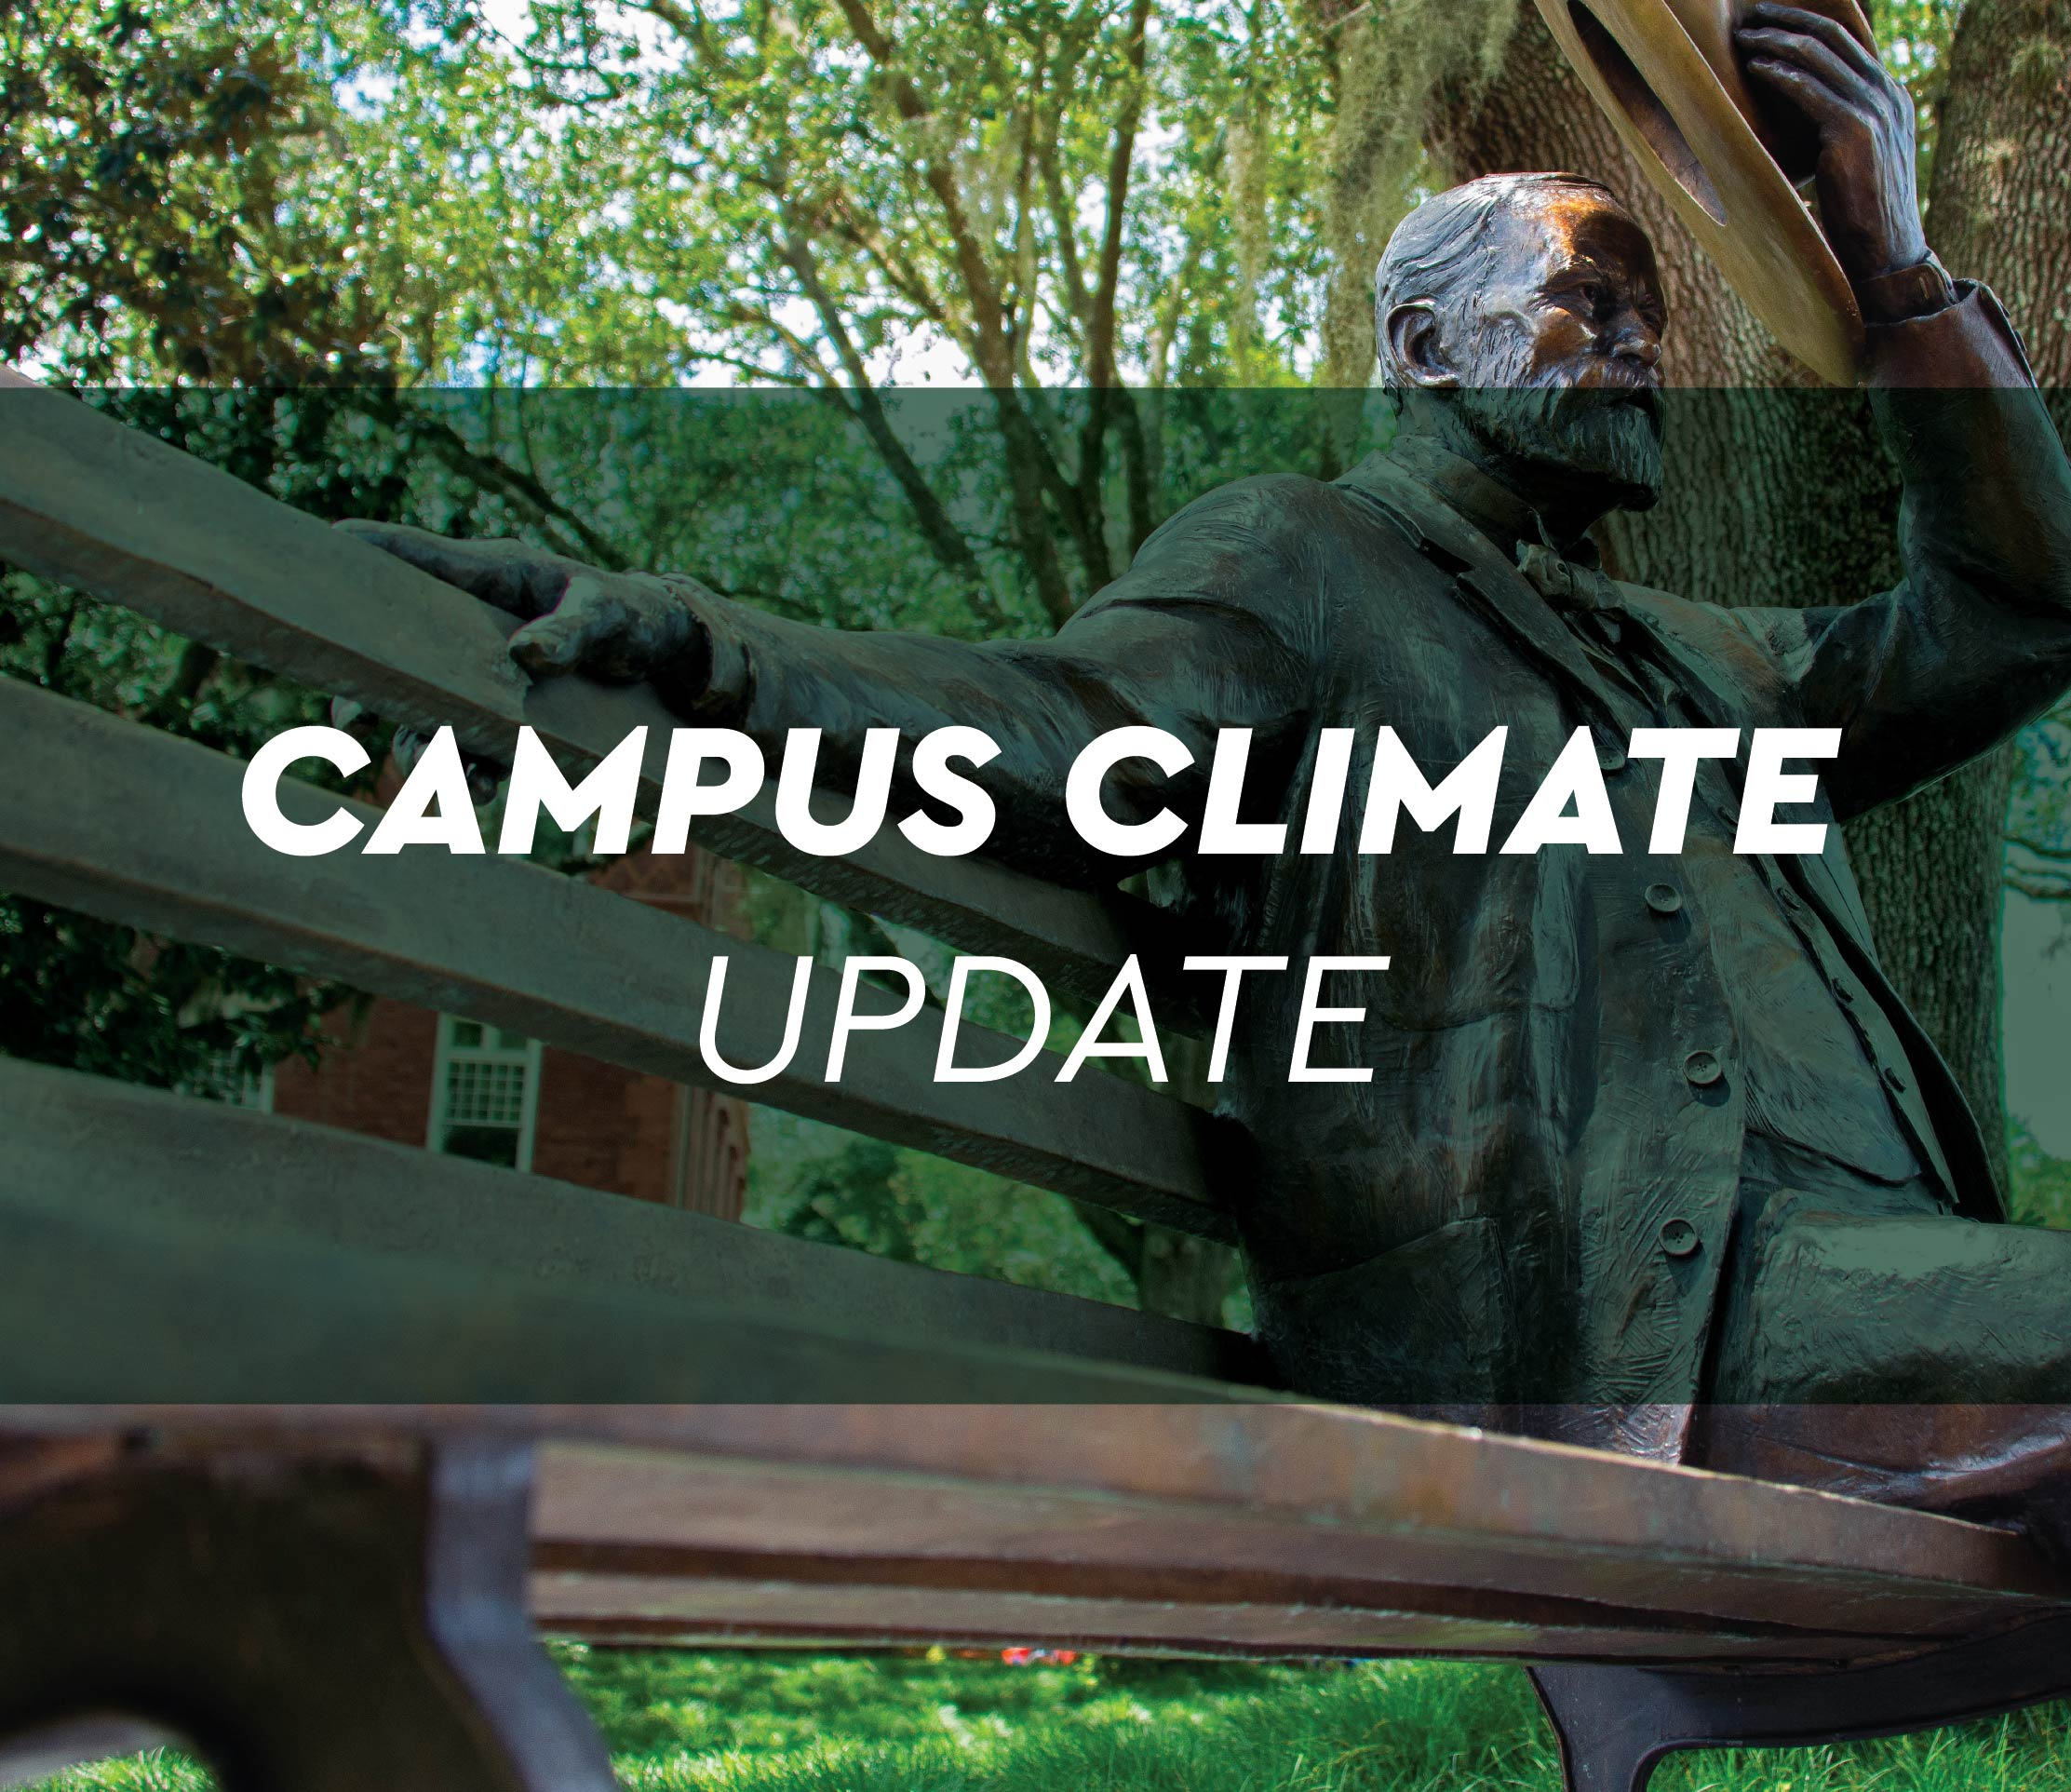 graphic says, Campus Climate Update, with a green filter over John B. Stetson statue